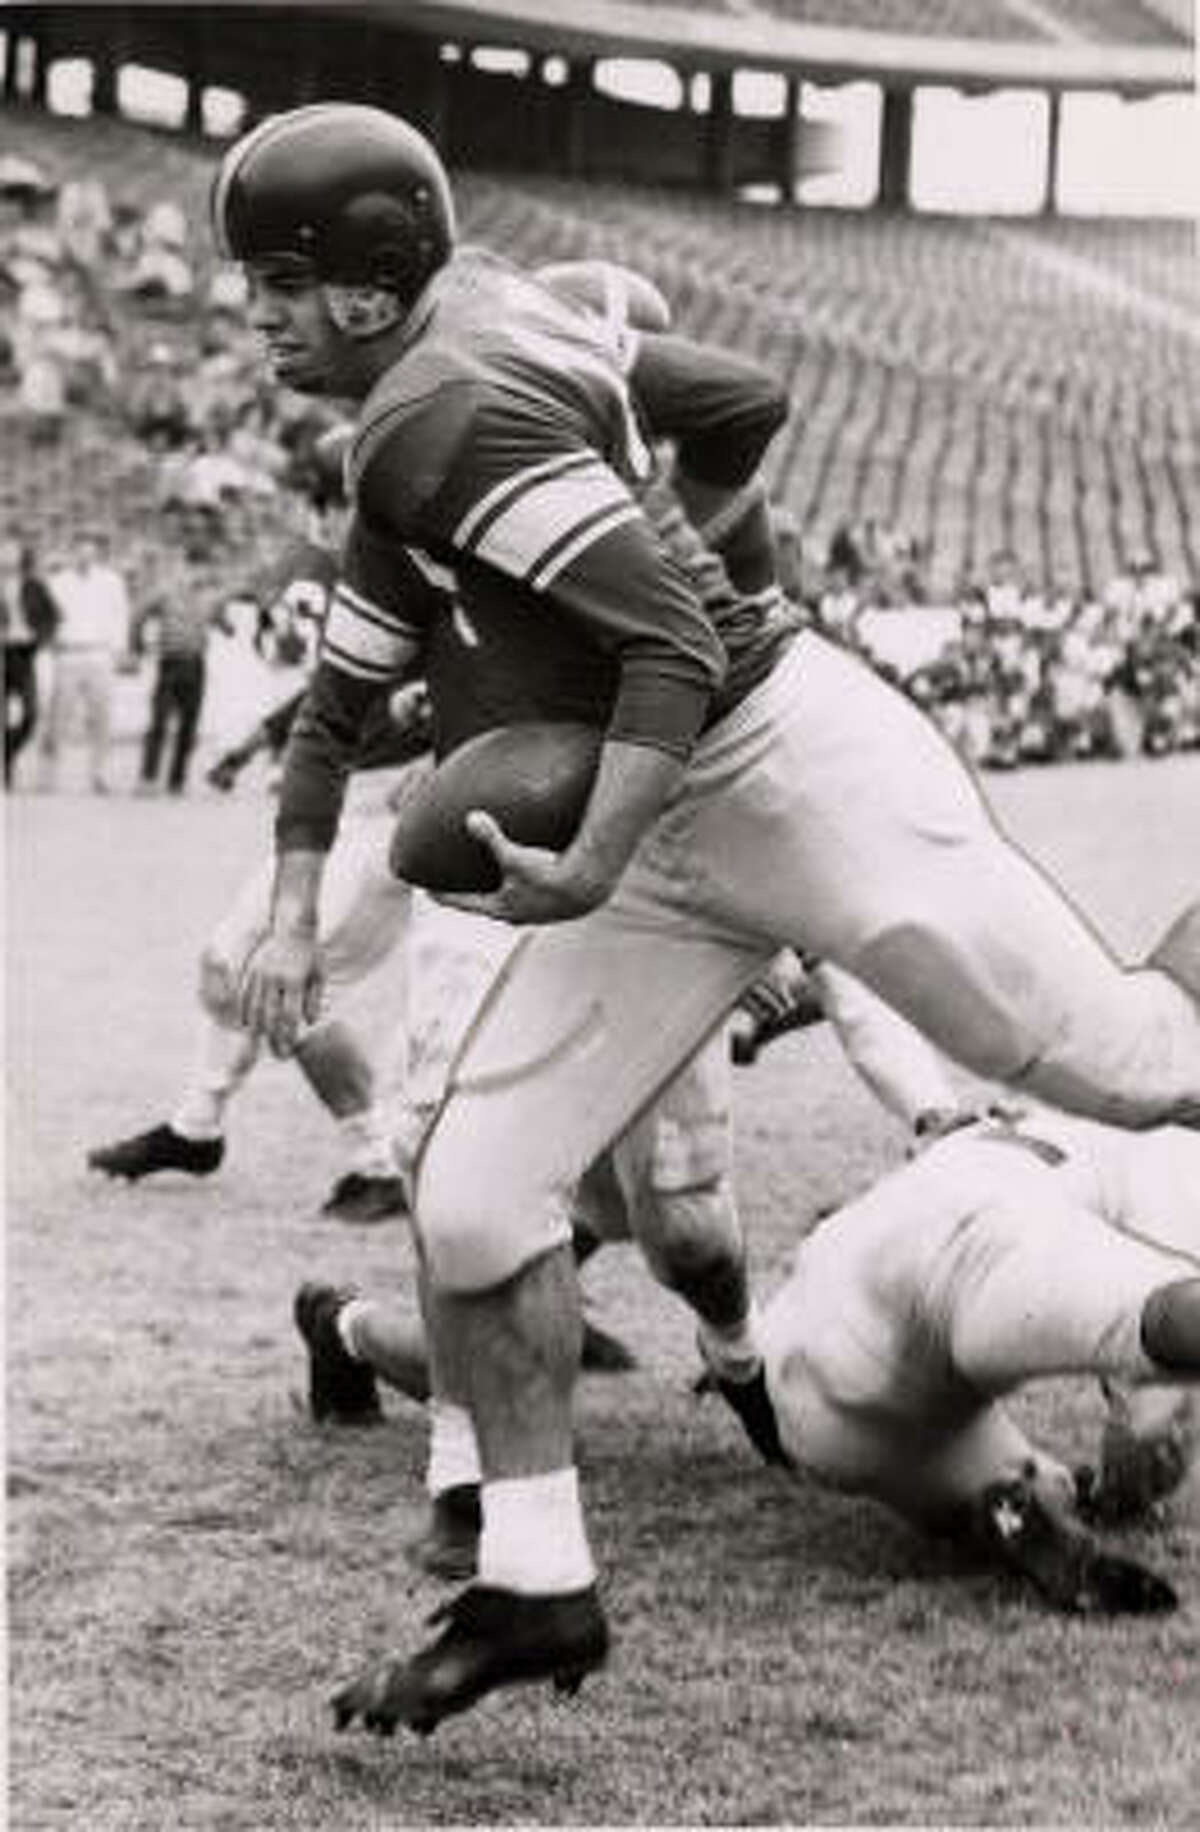 King Hill led the Owls to the 1957 Southwest Conference title.